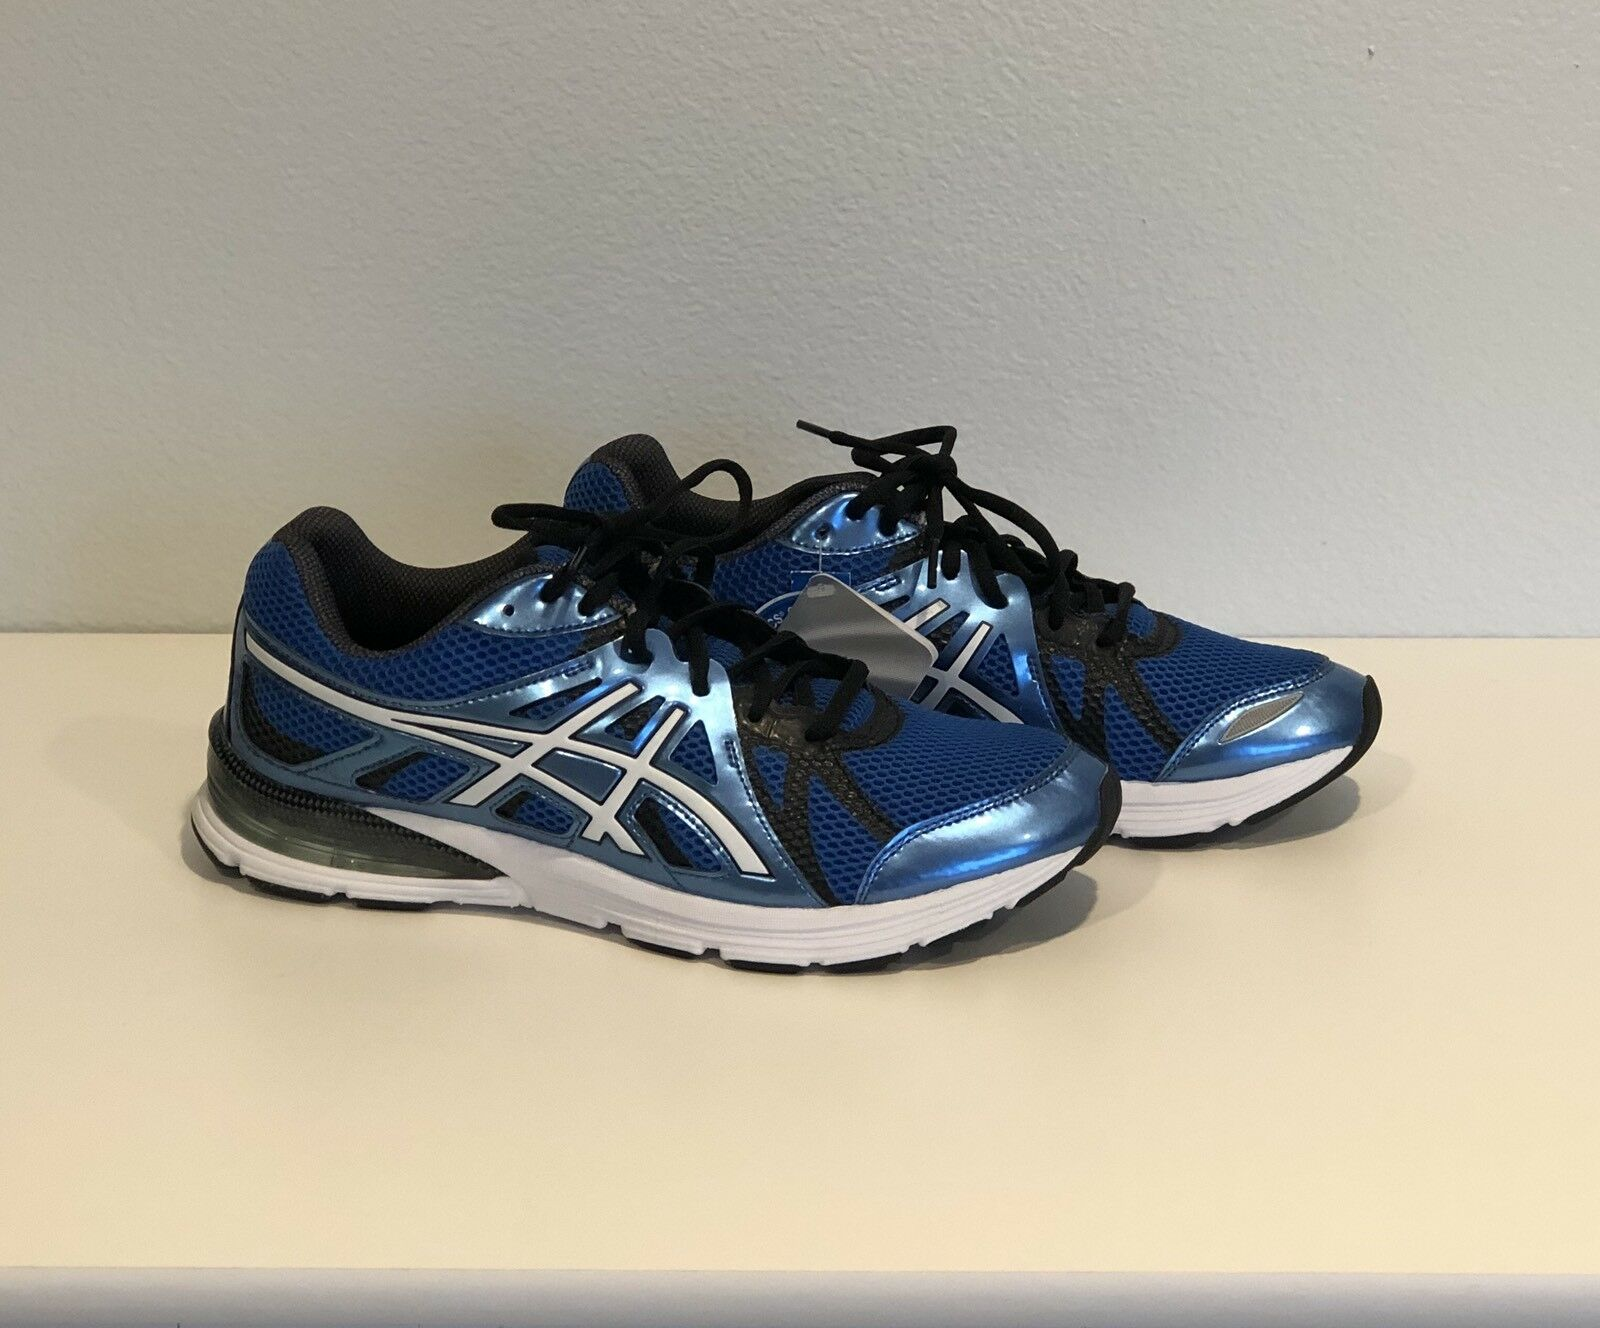 Asics Gel-Preleus T430N Men's Running shoes Size 11